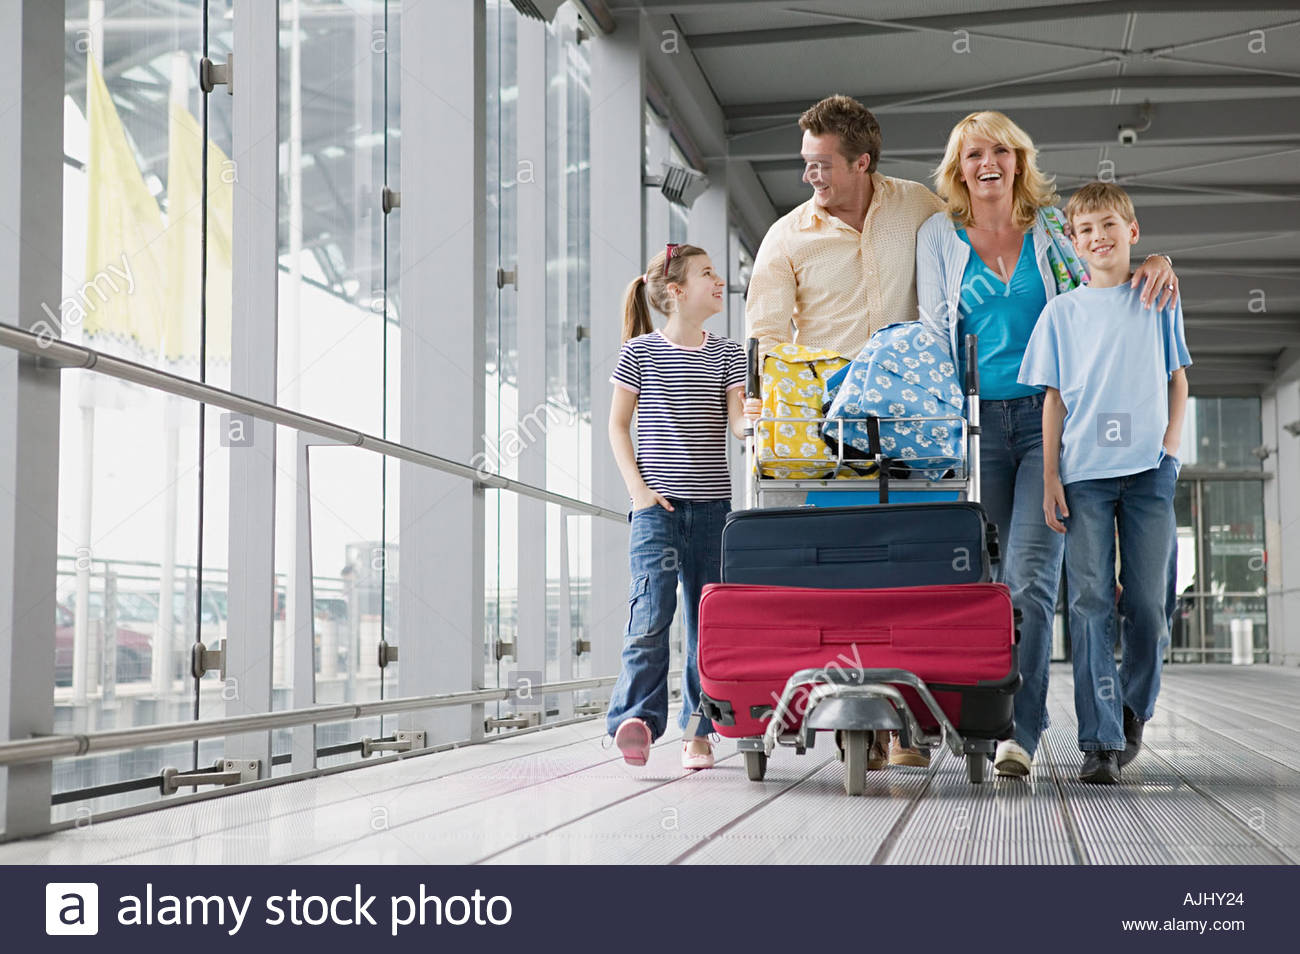 family-with-suitcases-in-an-airport-AJHY24.jpg